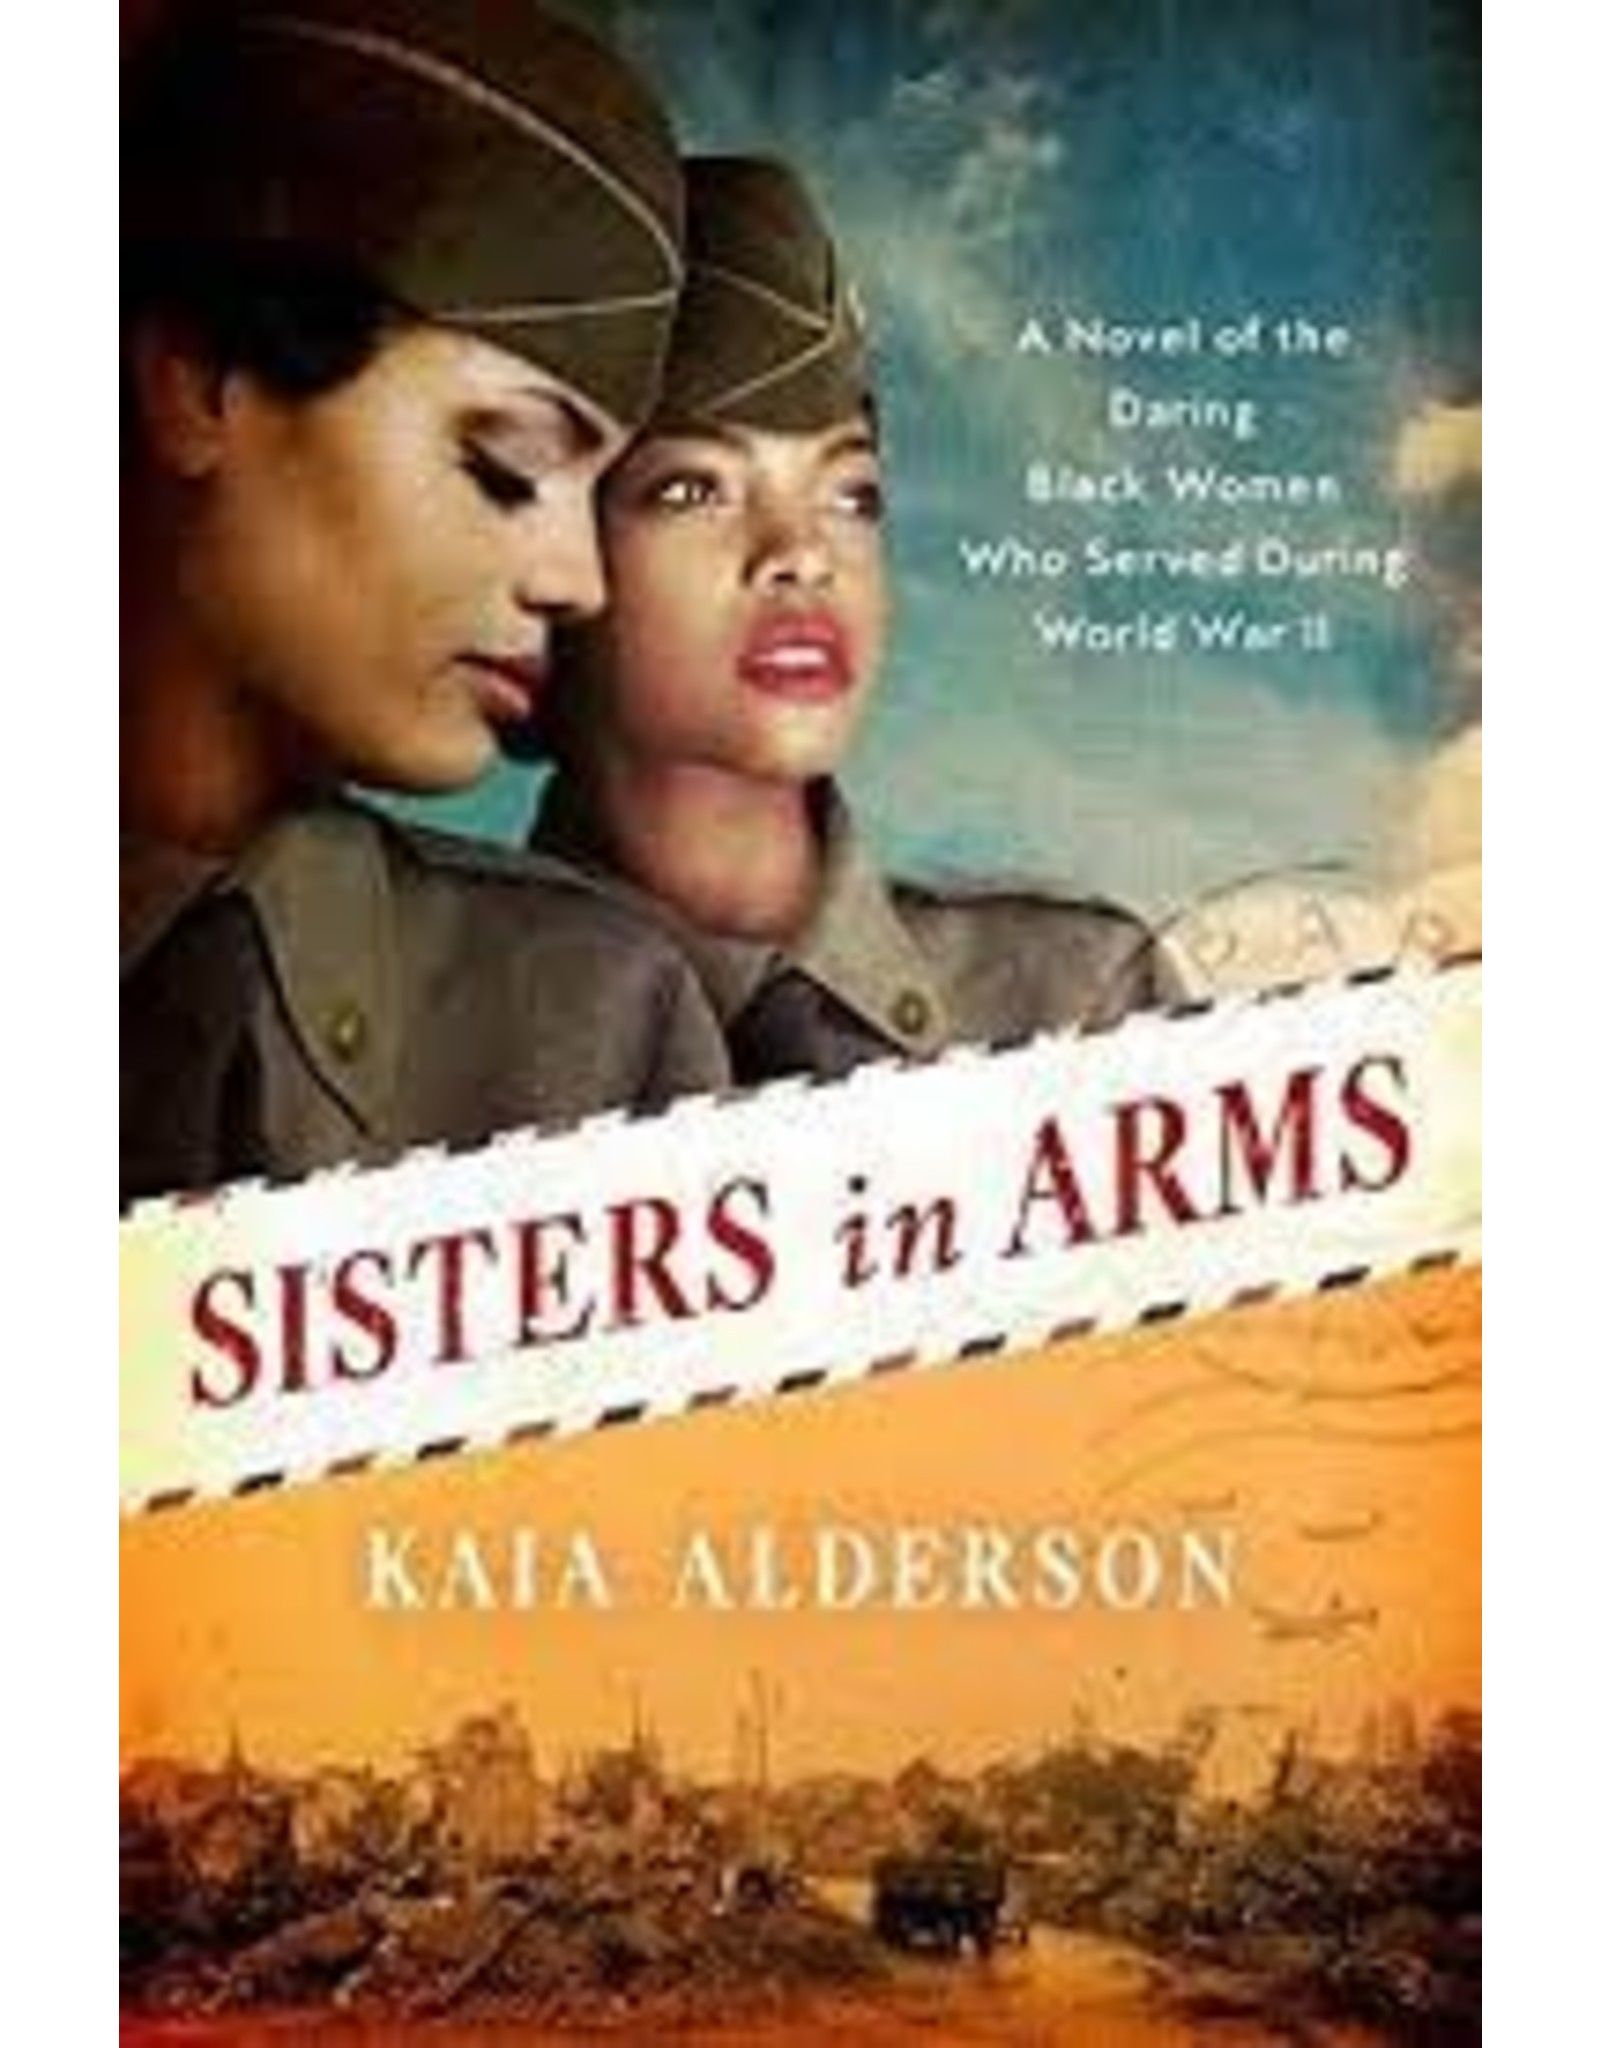 Books Sisters in Arms by Kaia Alderson (Signed Copies)